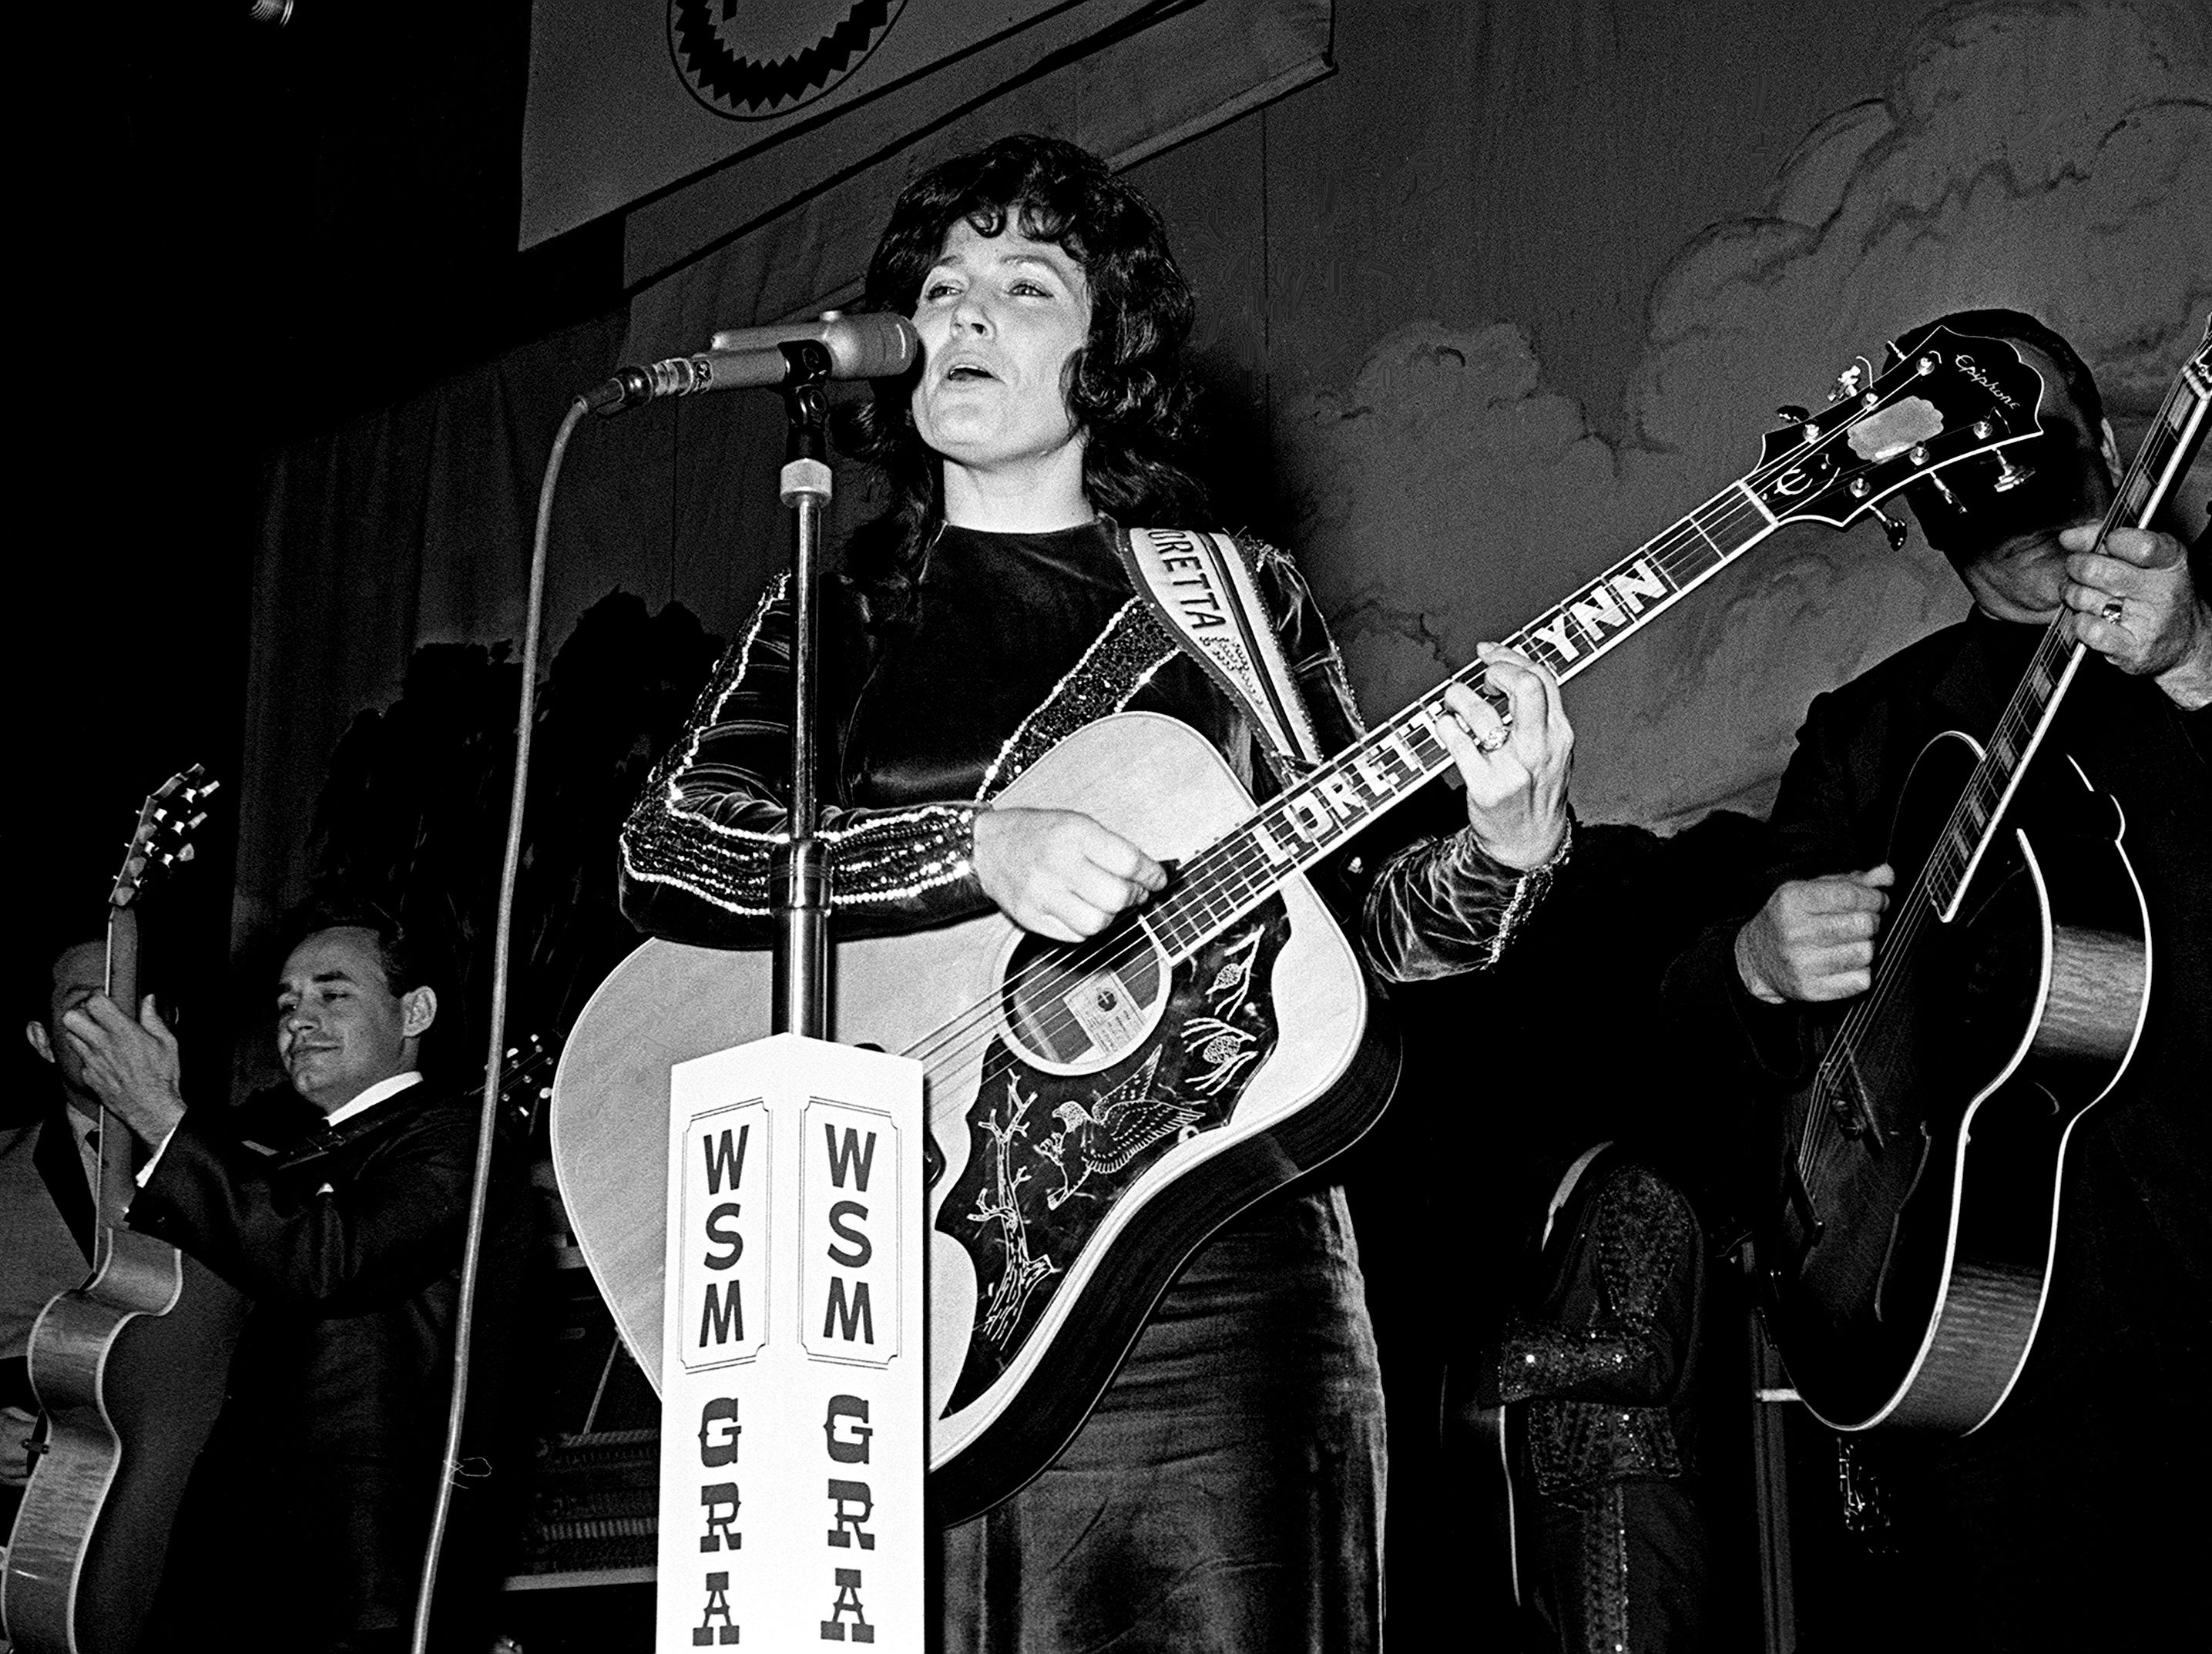 Loretta Lynn is performing for the crowd during a Saturday night Grand Ole Opry show at the Ryman Auditorium on Dec. 10, 1966.